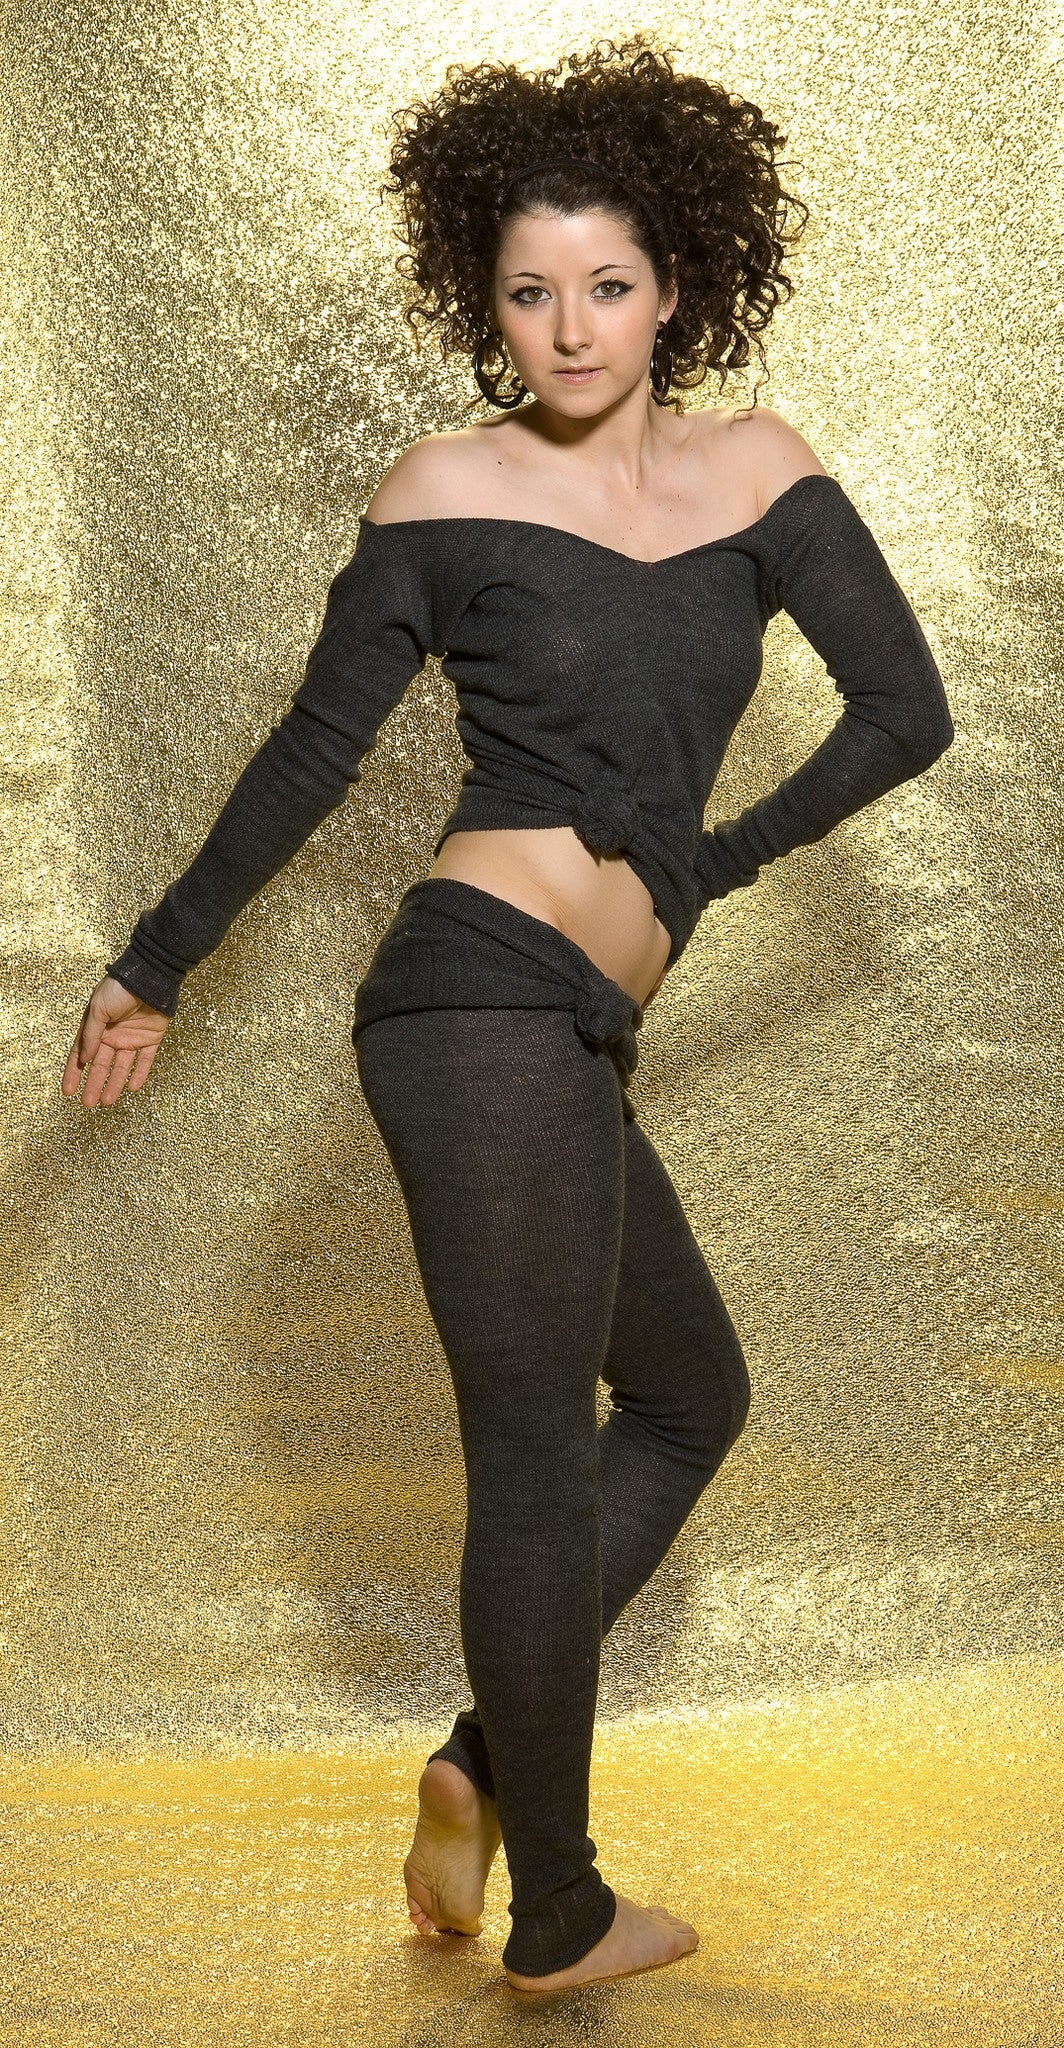 KD dance New York Soft, Luxurious Loose Knit  Roll Waist Tights with Drawstring Made In USA @KDdanceNewYork #MadeInUSA - 5